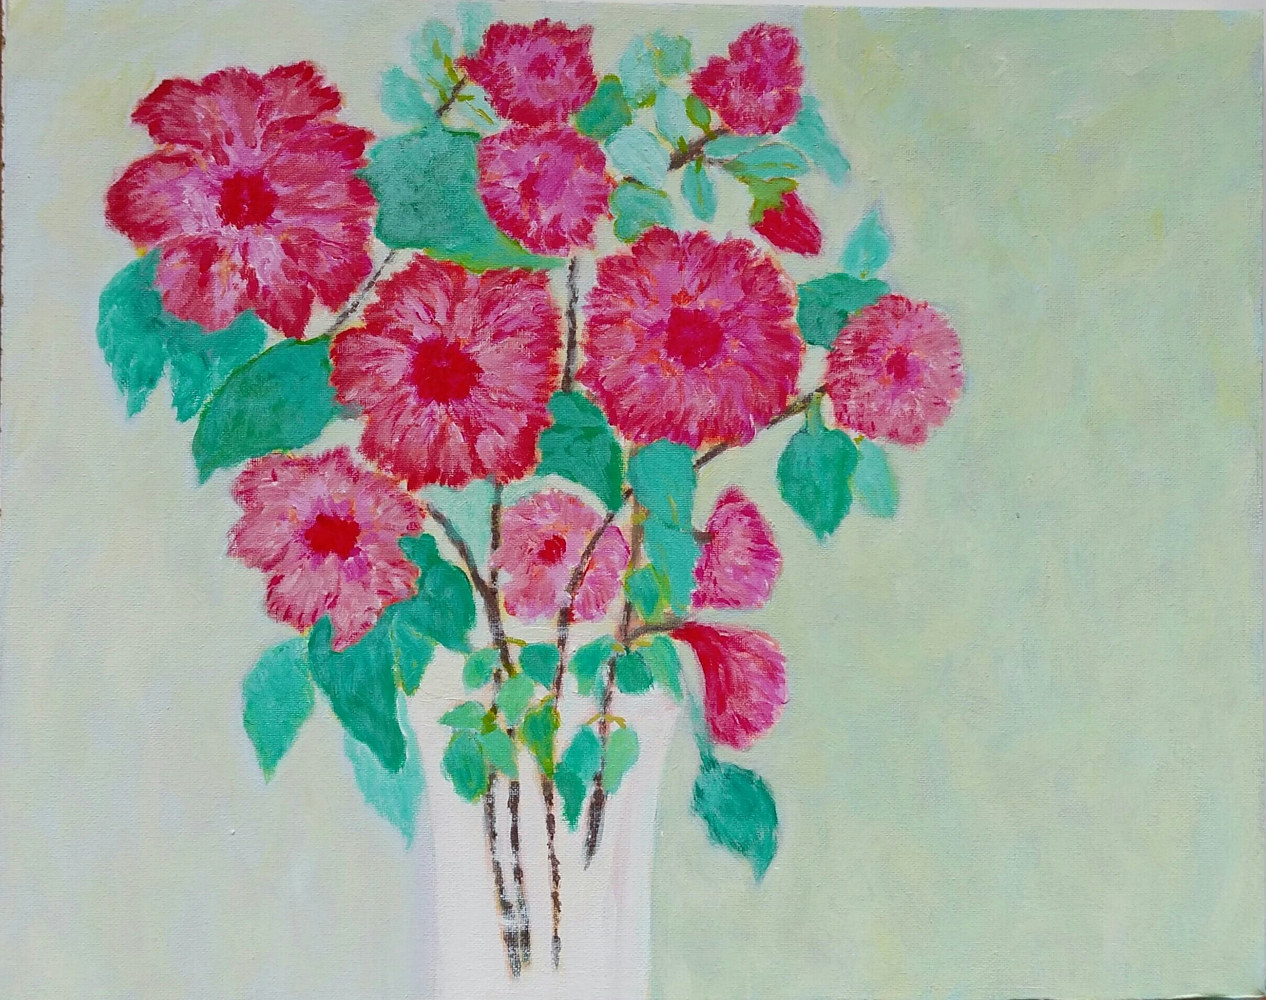 Acrylic painting Hibiscus in a Vase  by Gwenda Branjerdporn